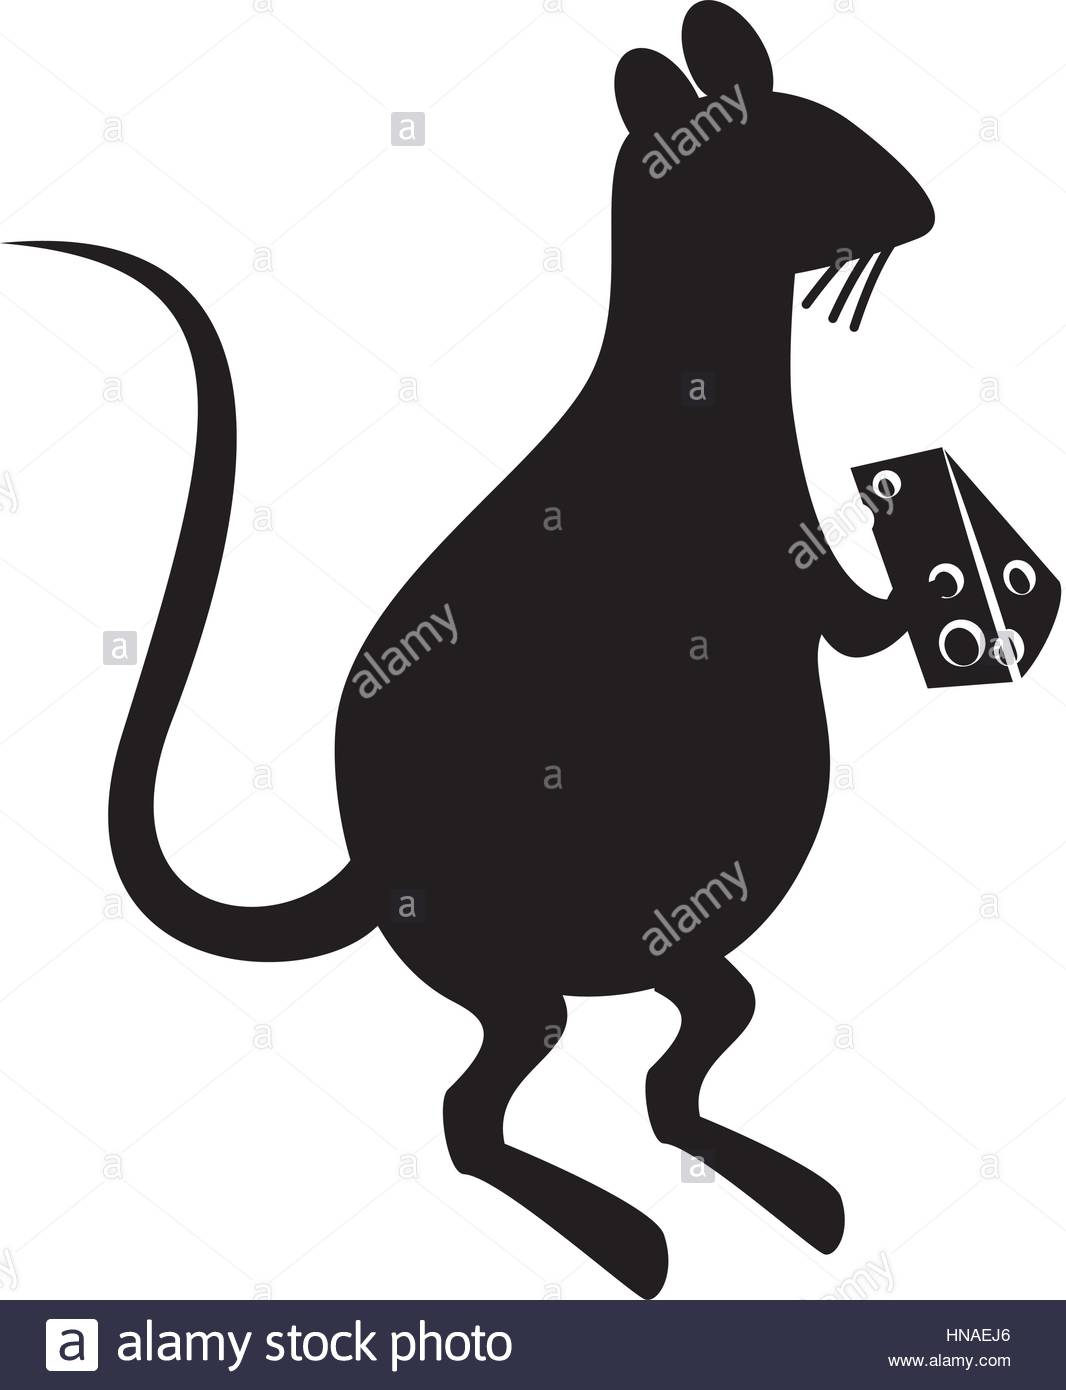 1066x1390 Rat Eating Cheese Silhouette Vector Illustration Design Stock